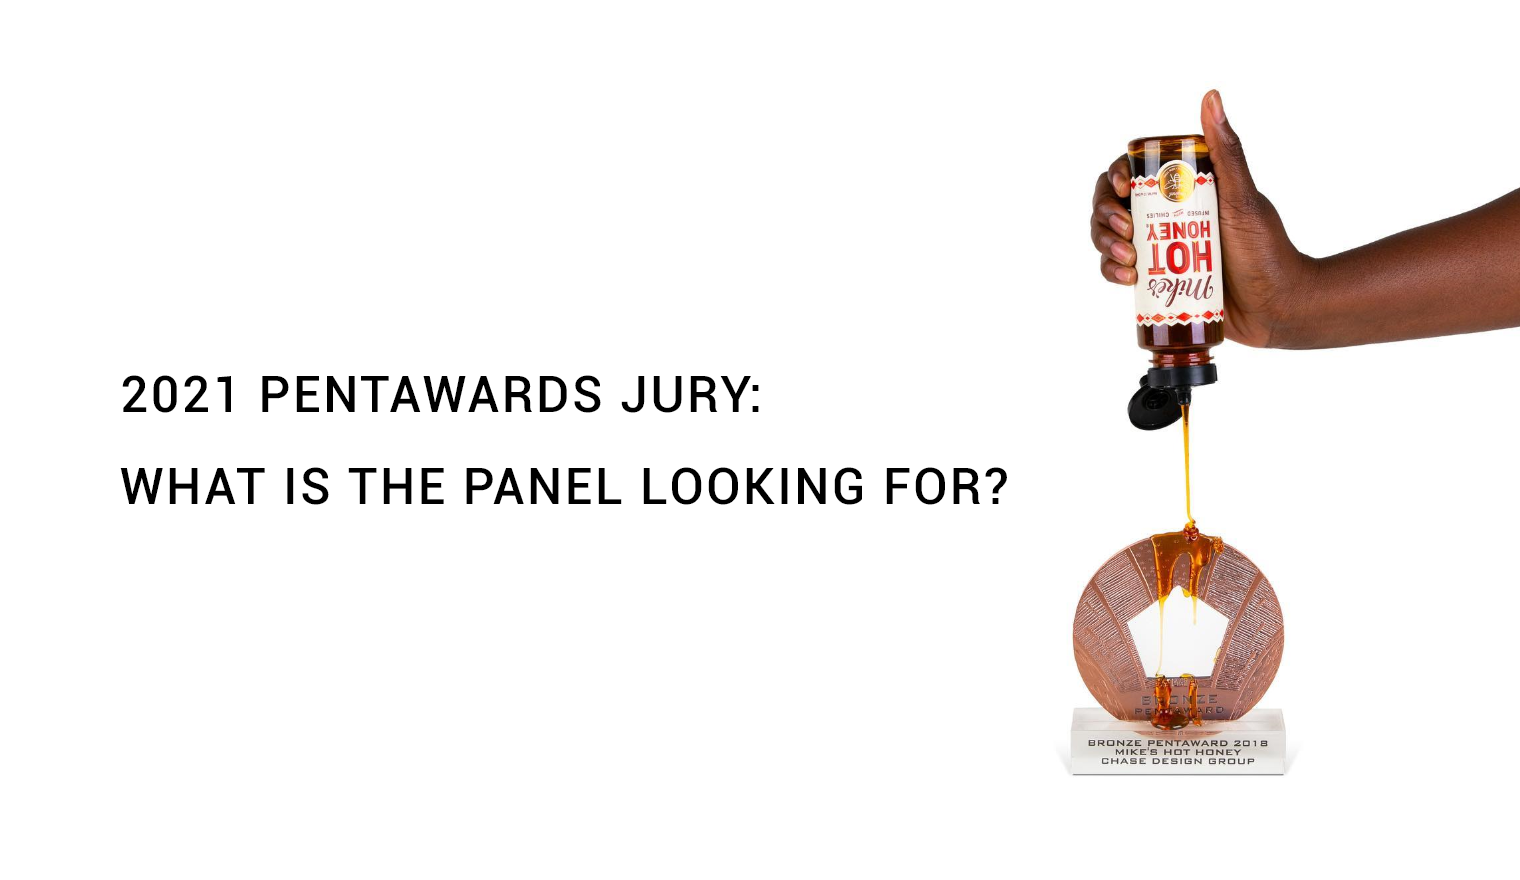 2021 Pentawards jury: what is the panel looking for?